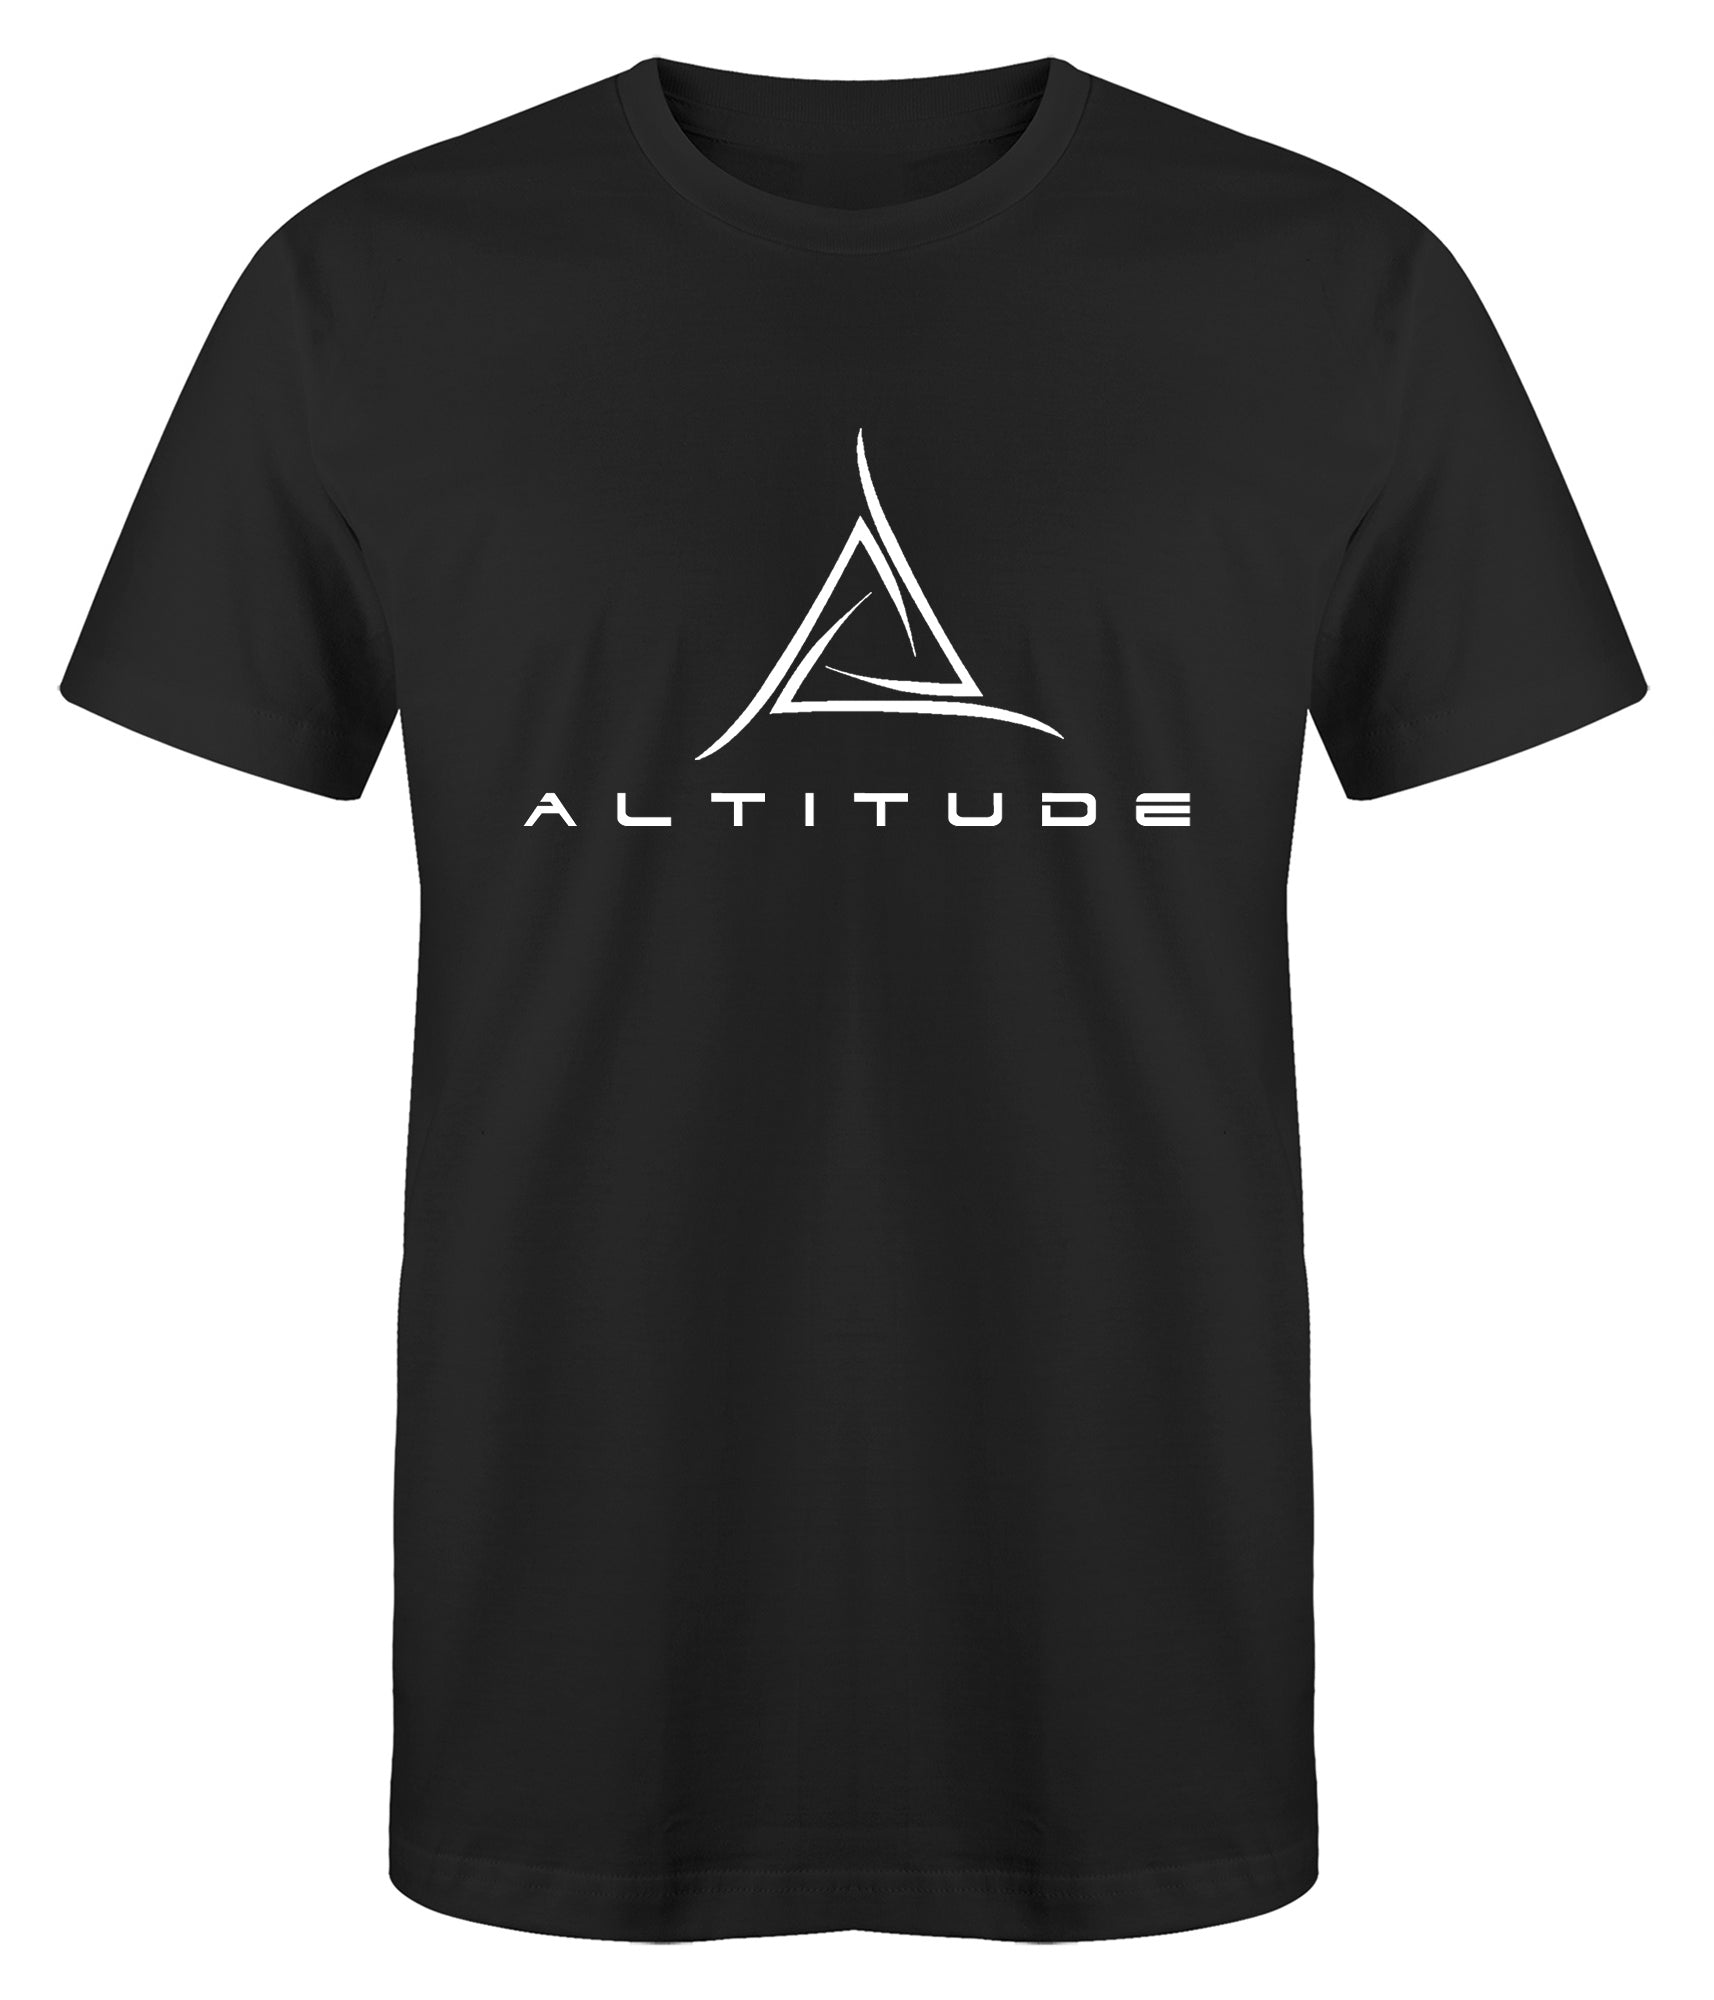 Altitude 'ACTIVE' Fitness T-Shirt